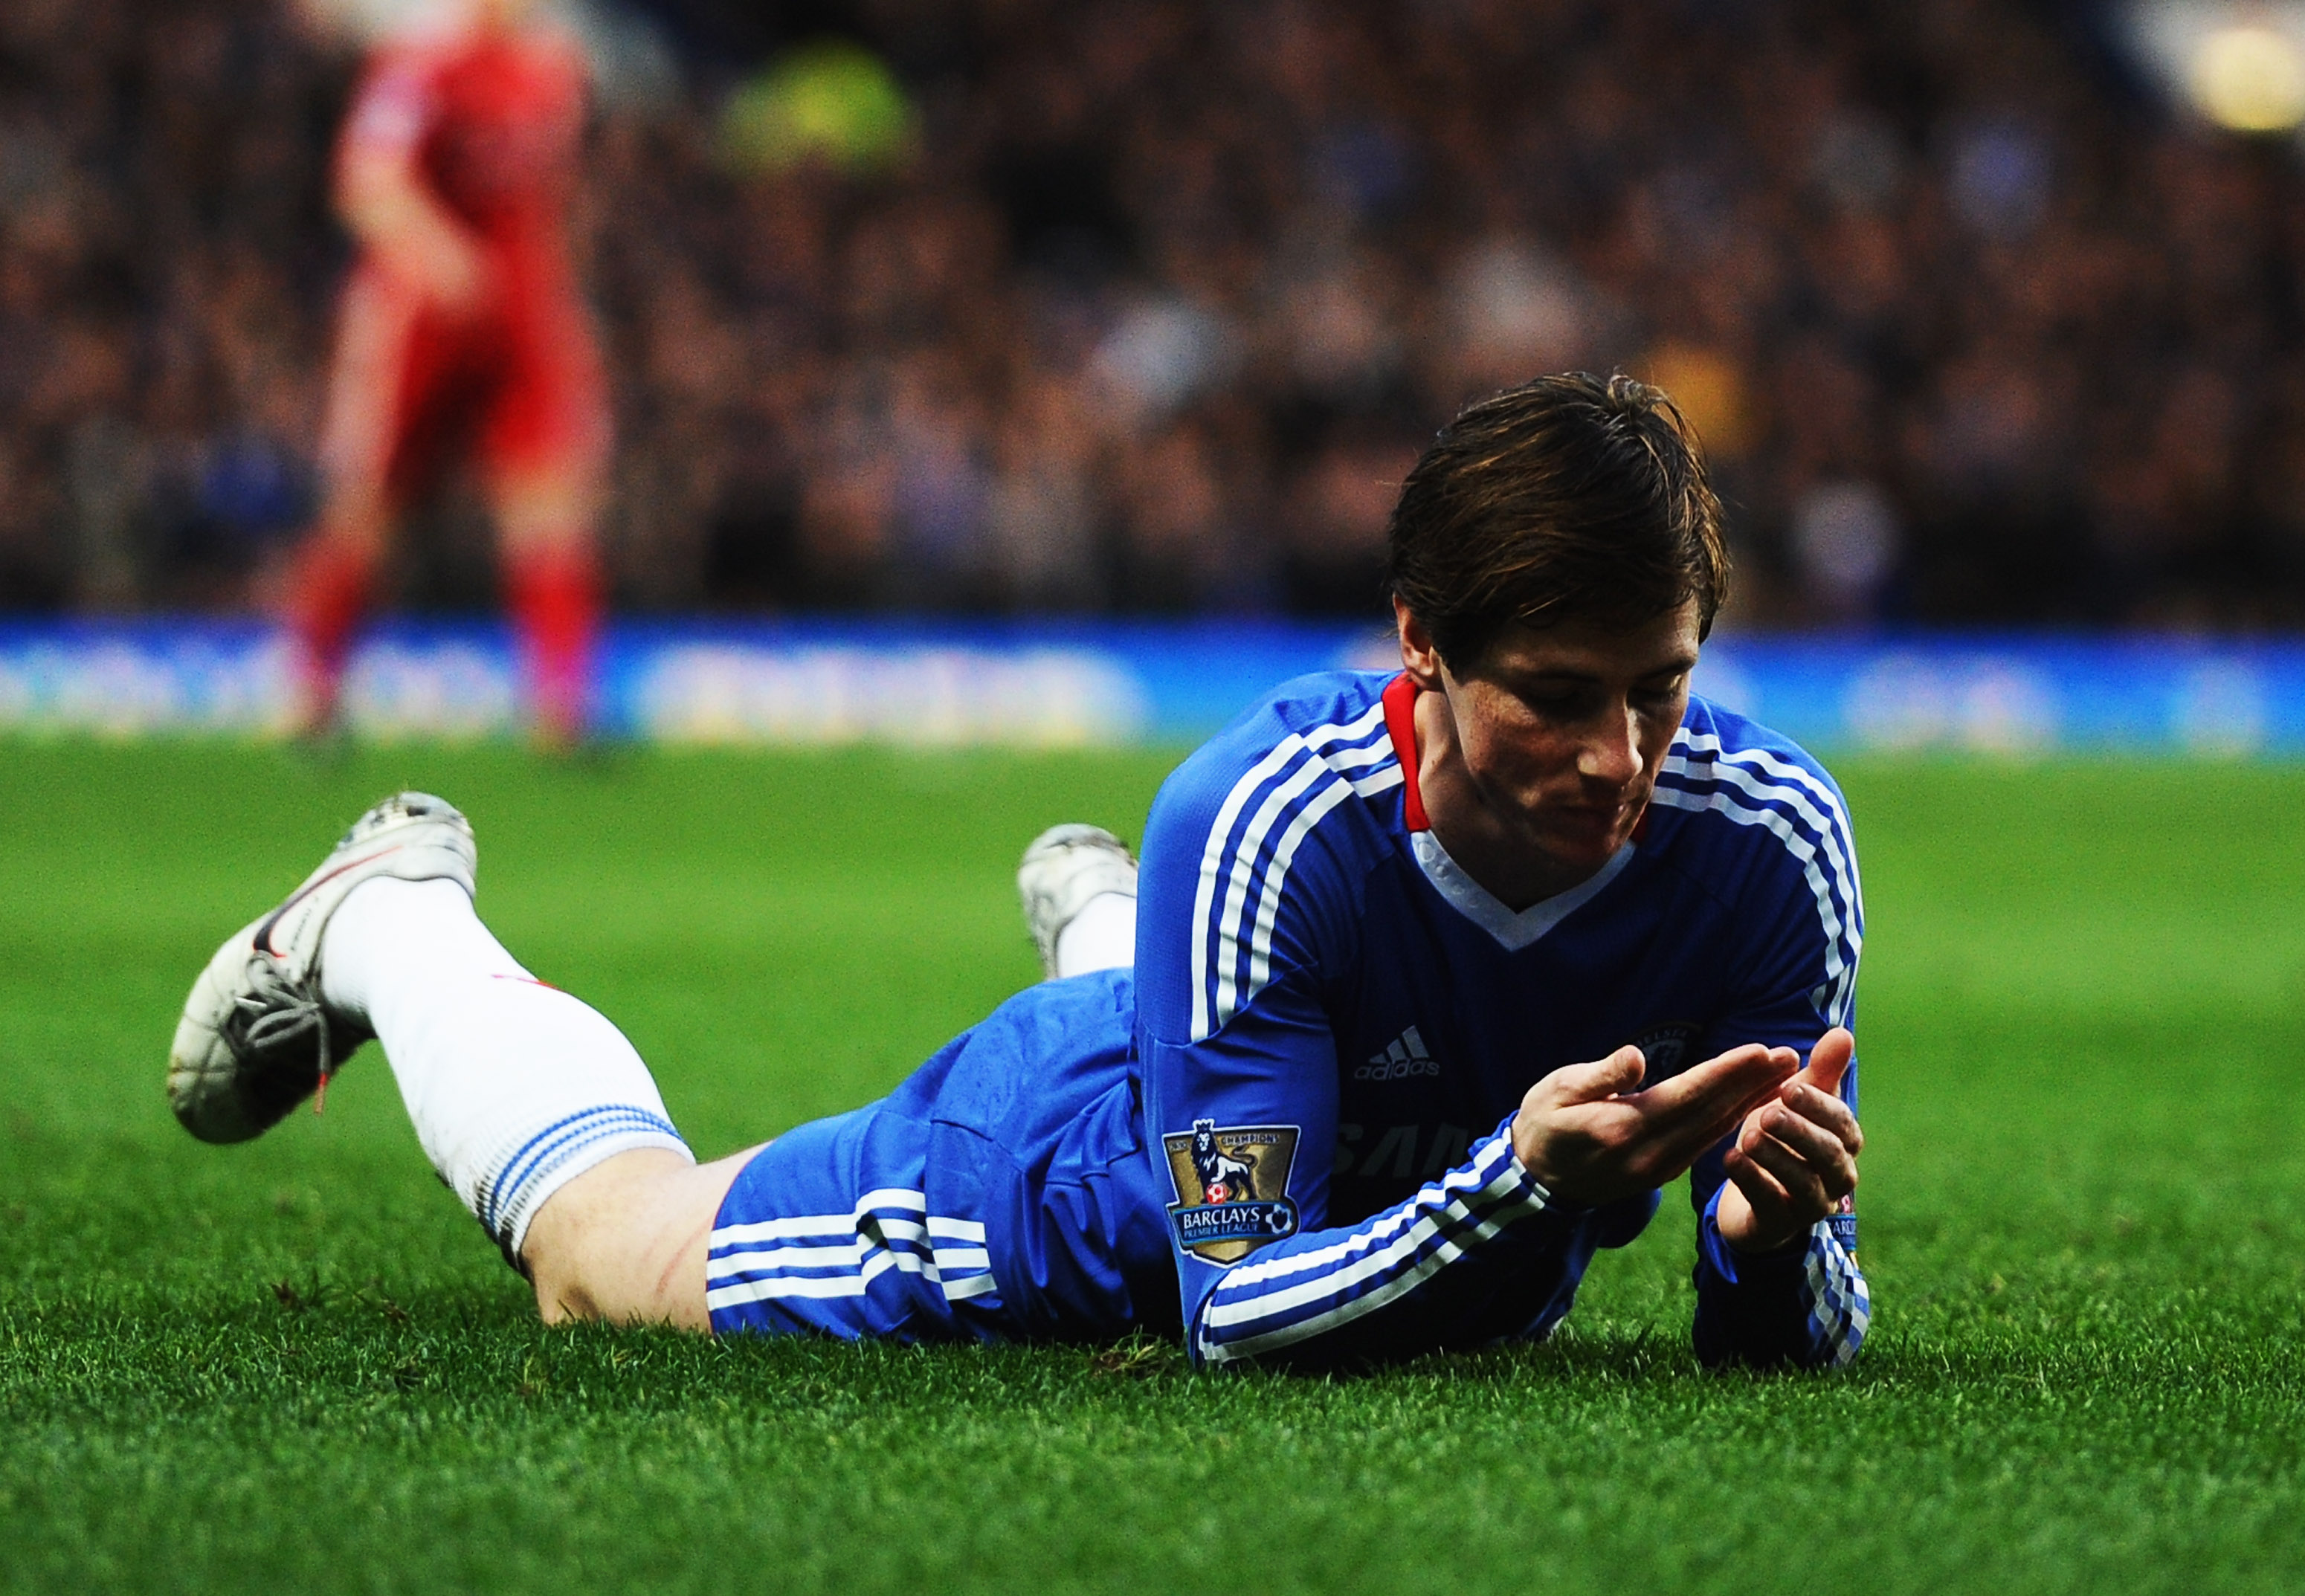 LONDON, ENGLAND - FEBRUARY 06:  Fernando Torres of Chelsea looks on after a challenge by Daniel Agger of Liverpool during the Barclays Premier League match between Chelsea and Liverpool at Stamford Bridge on February 6, 2011 in London, England.  (Photo by